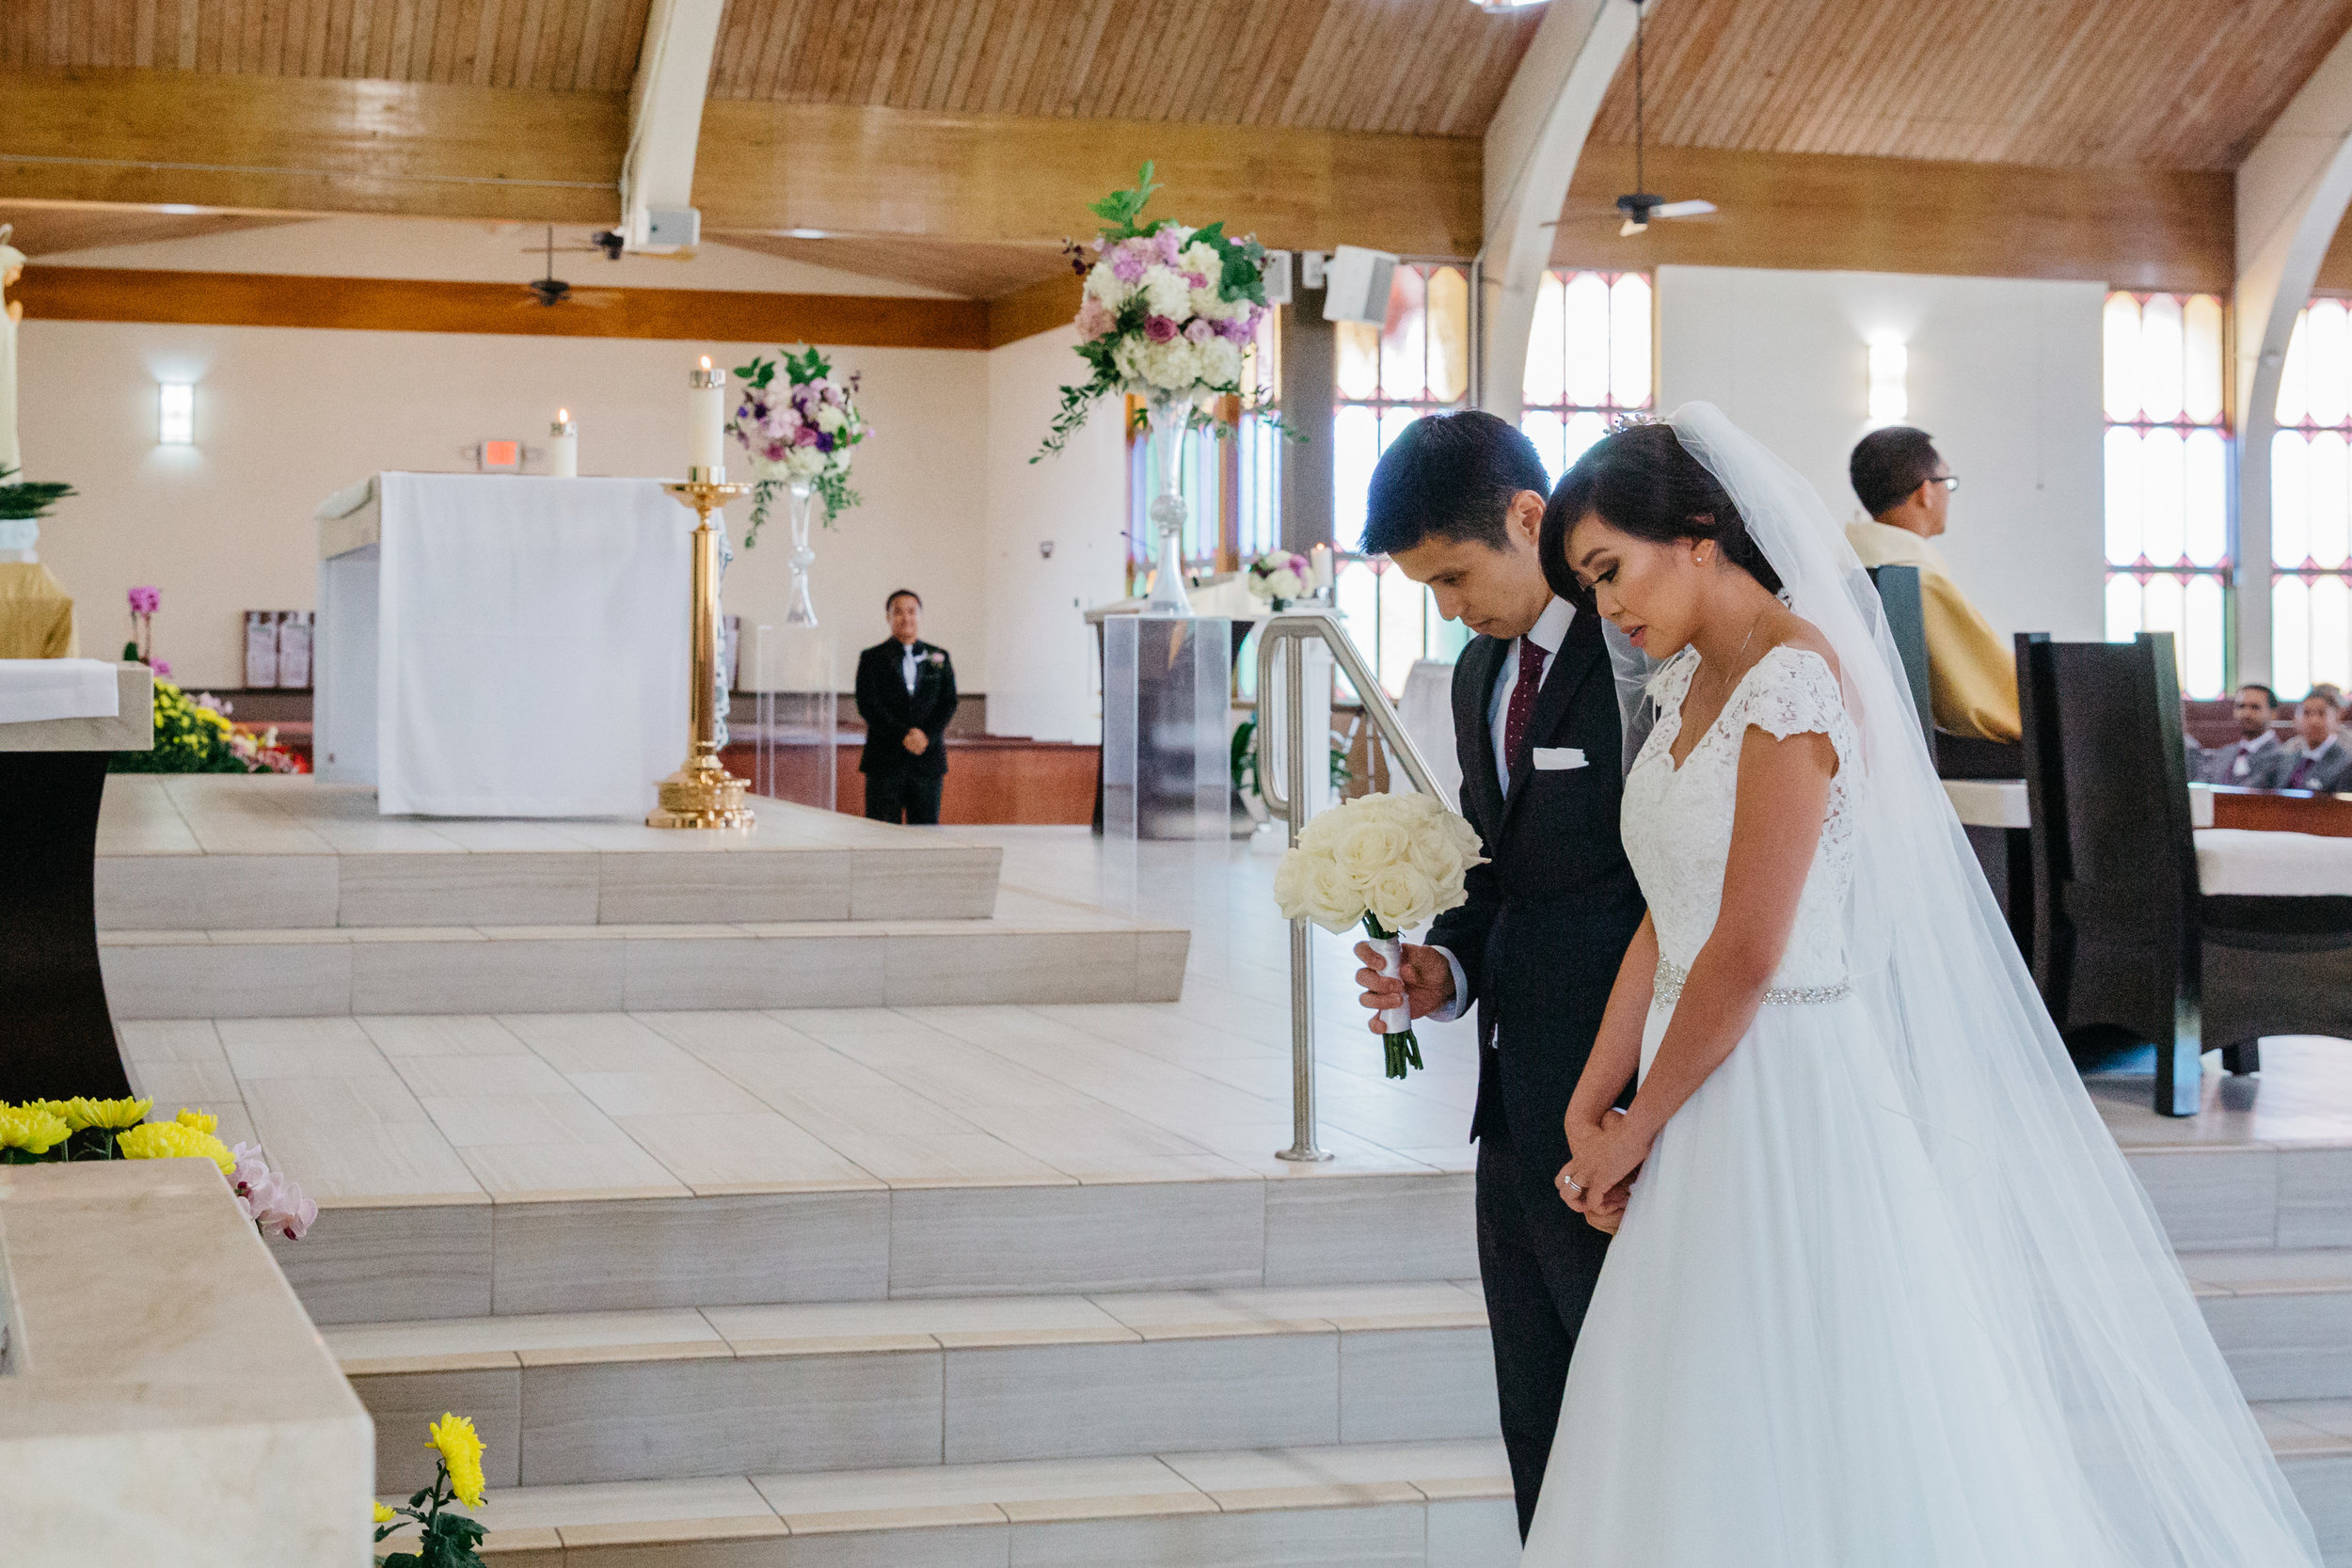 Lyan and Duy 1146.jpg